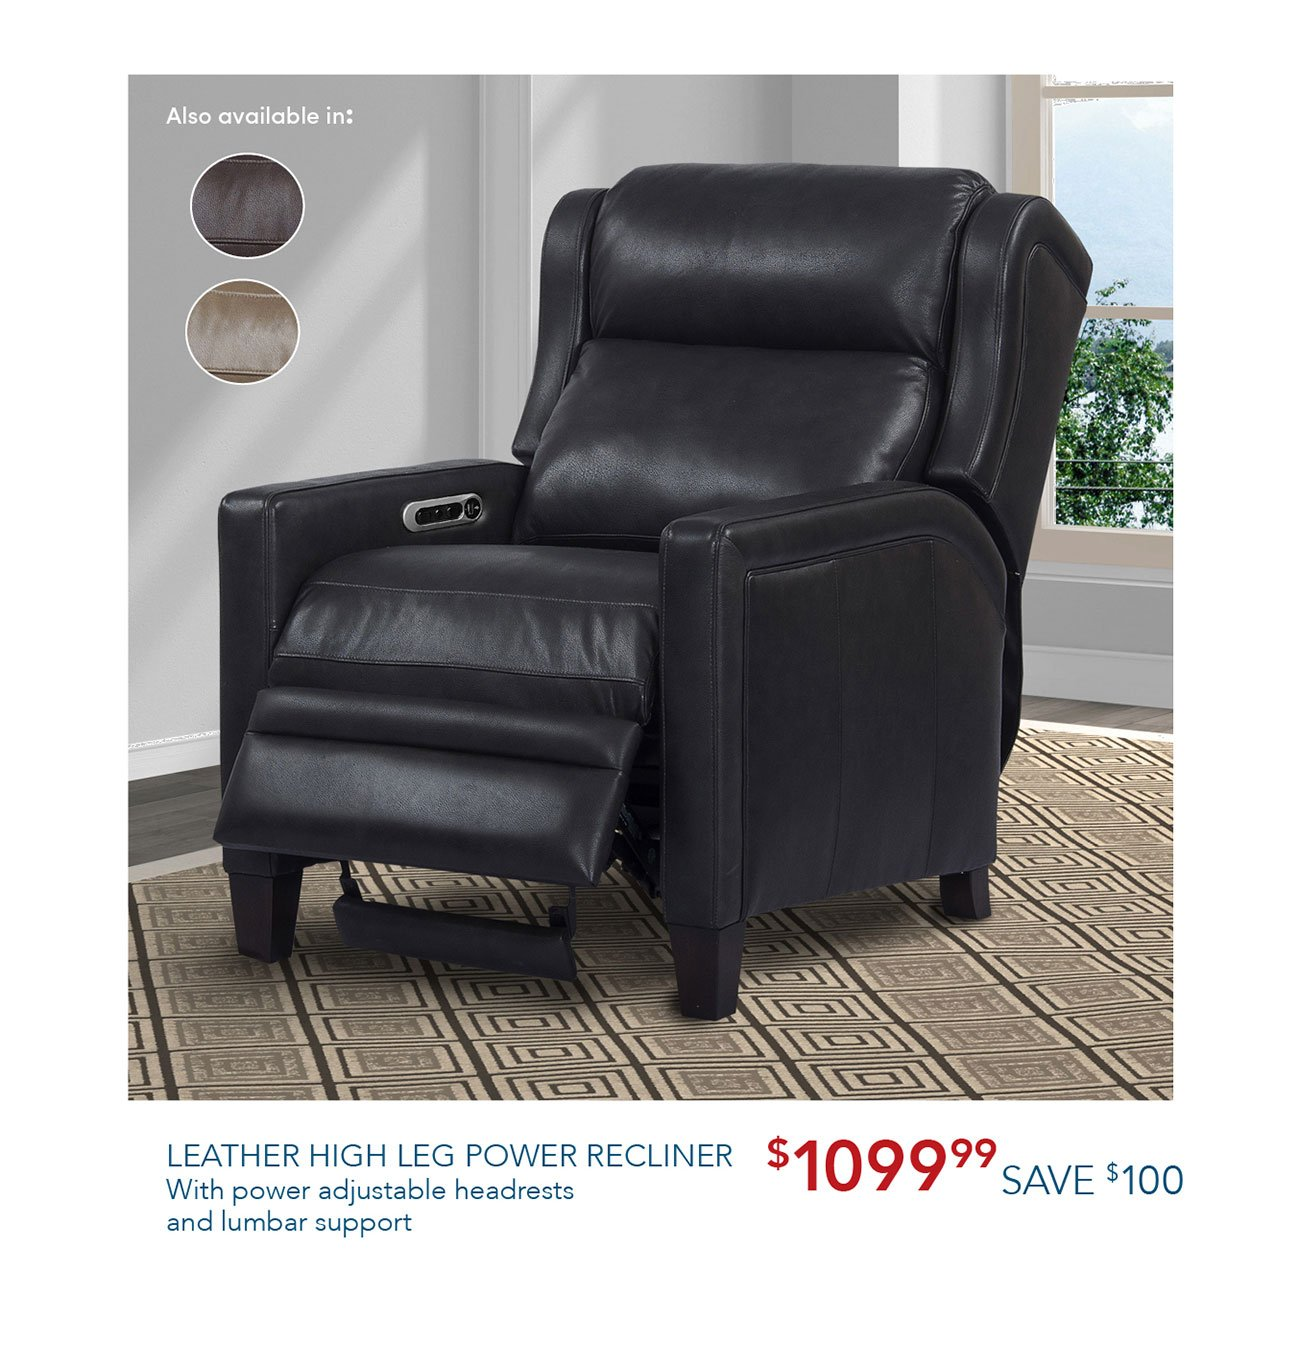 Leather-power-recliner